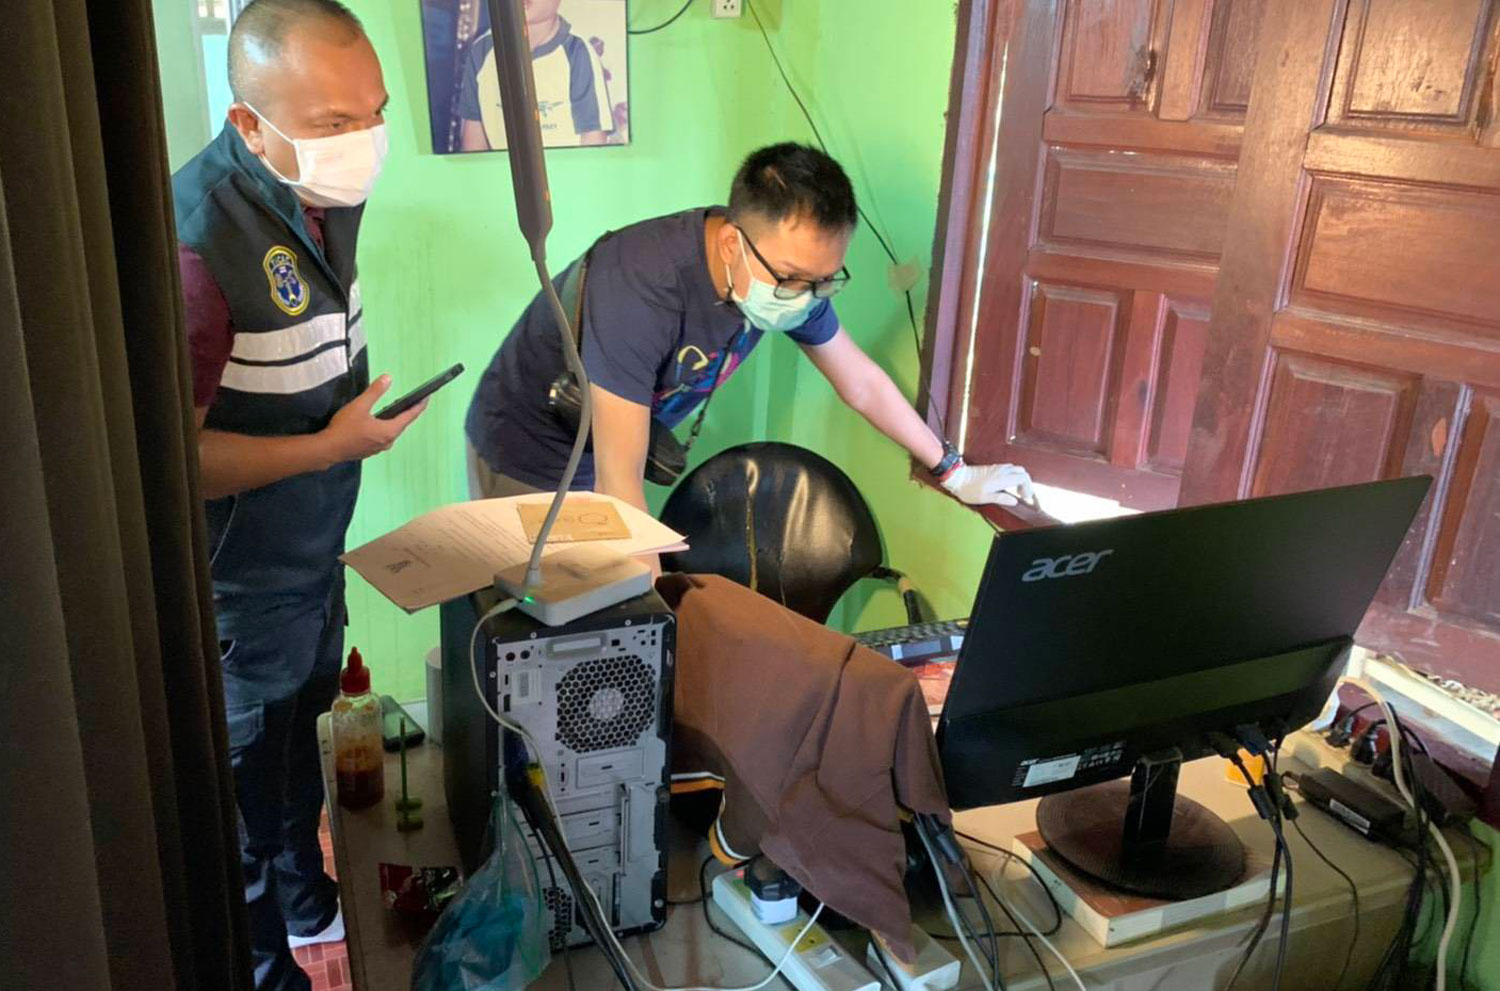 Police check a computer at a house in Mae Ramat district of Tak, where they found thousands of pornographic files featuring children and adults. (Photo supplied)